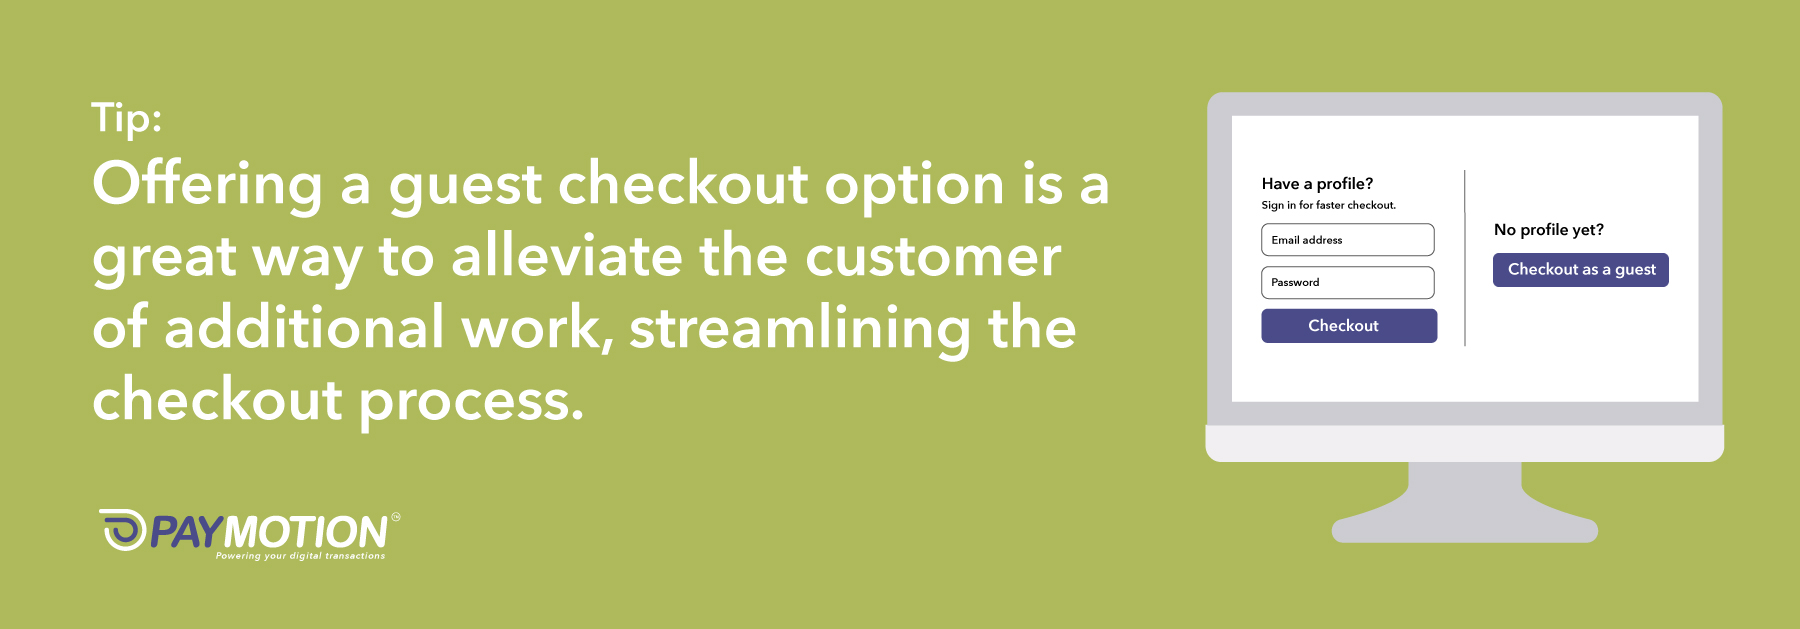 Offering a guest checkout option is a great way to alleviate the customer of additional work, streamlining the checkout process